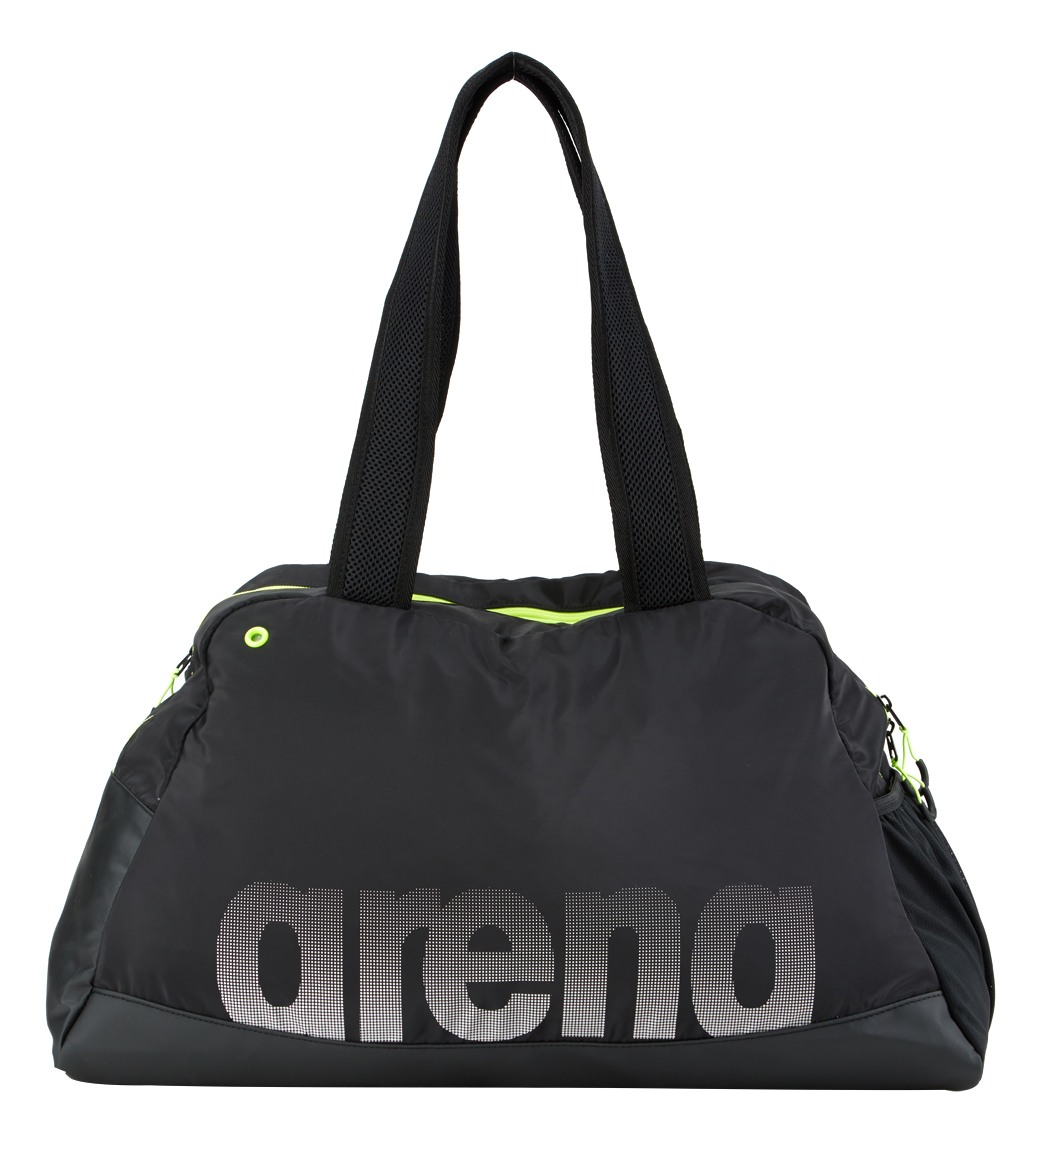 e357af03ef2 Arena Fast Woman Duffle Bag at SwimOutlet.com - Free Shipping